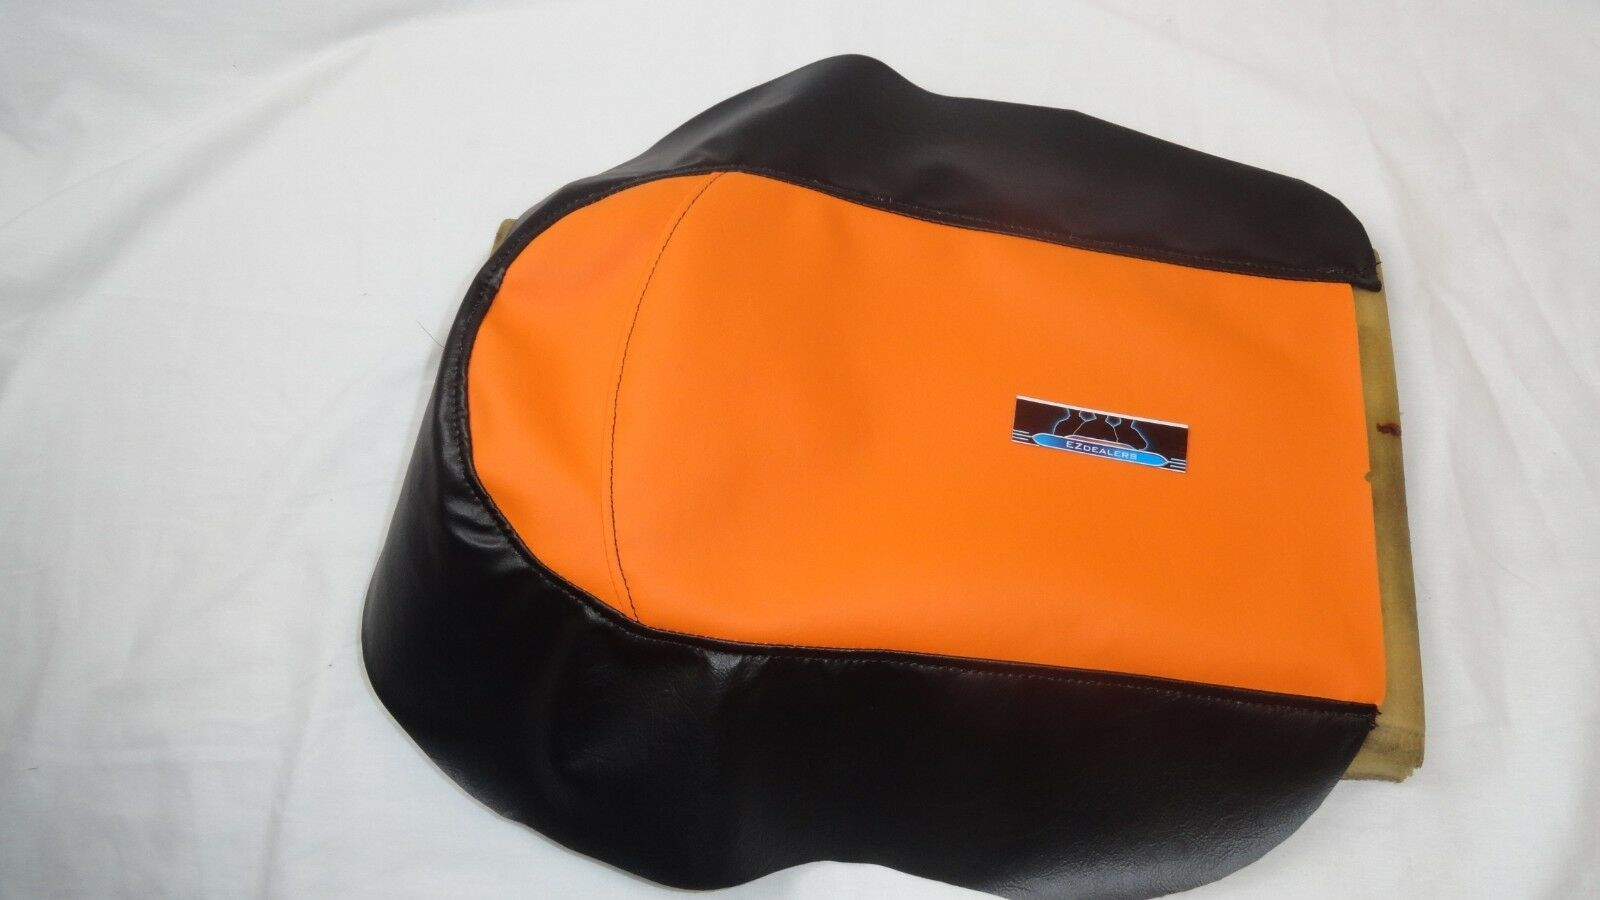 Polaris youth 120 snowmobile seat cover Orange. Fits most models 2000 to 2015